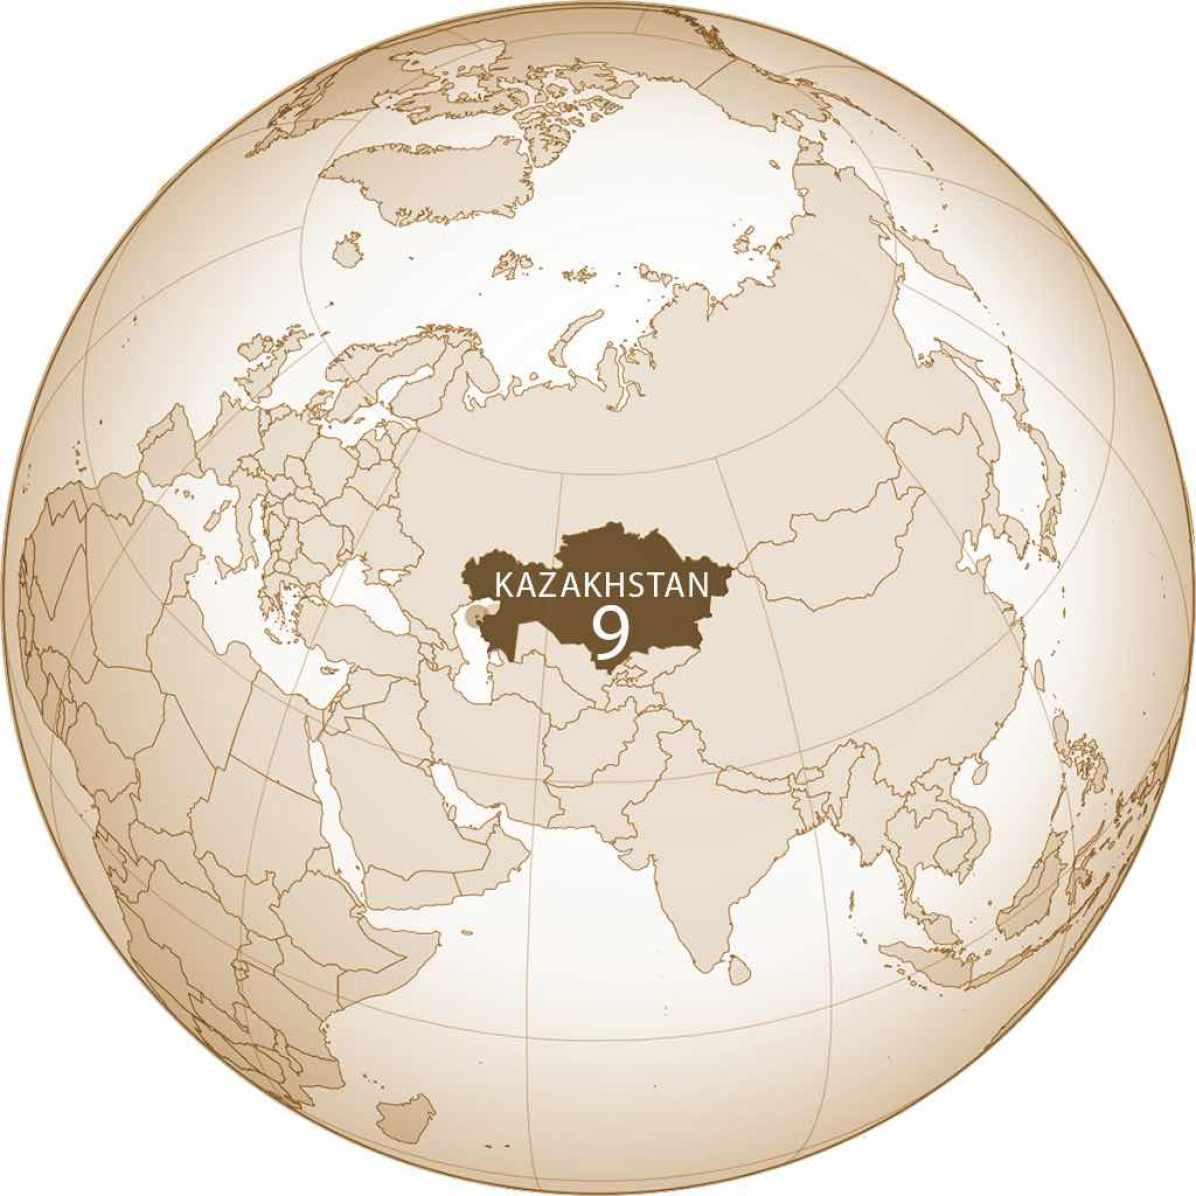 Kazakhstan World Map - by Turkish Flame/Wikimedia + S Solberg J